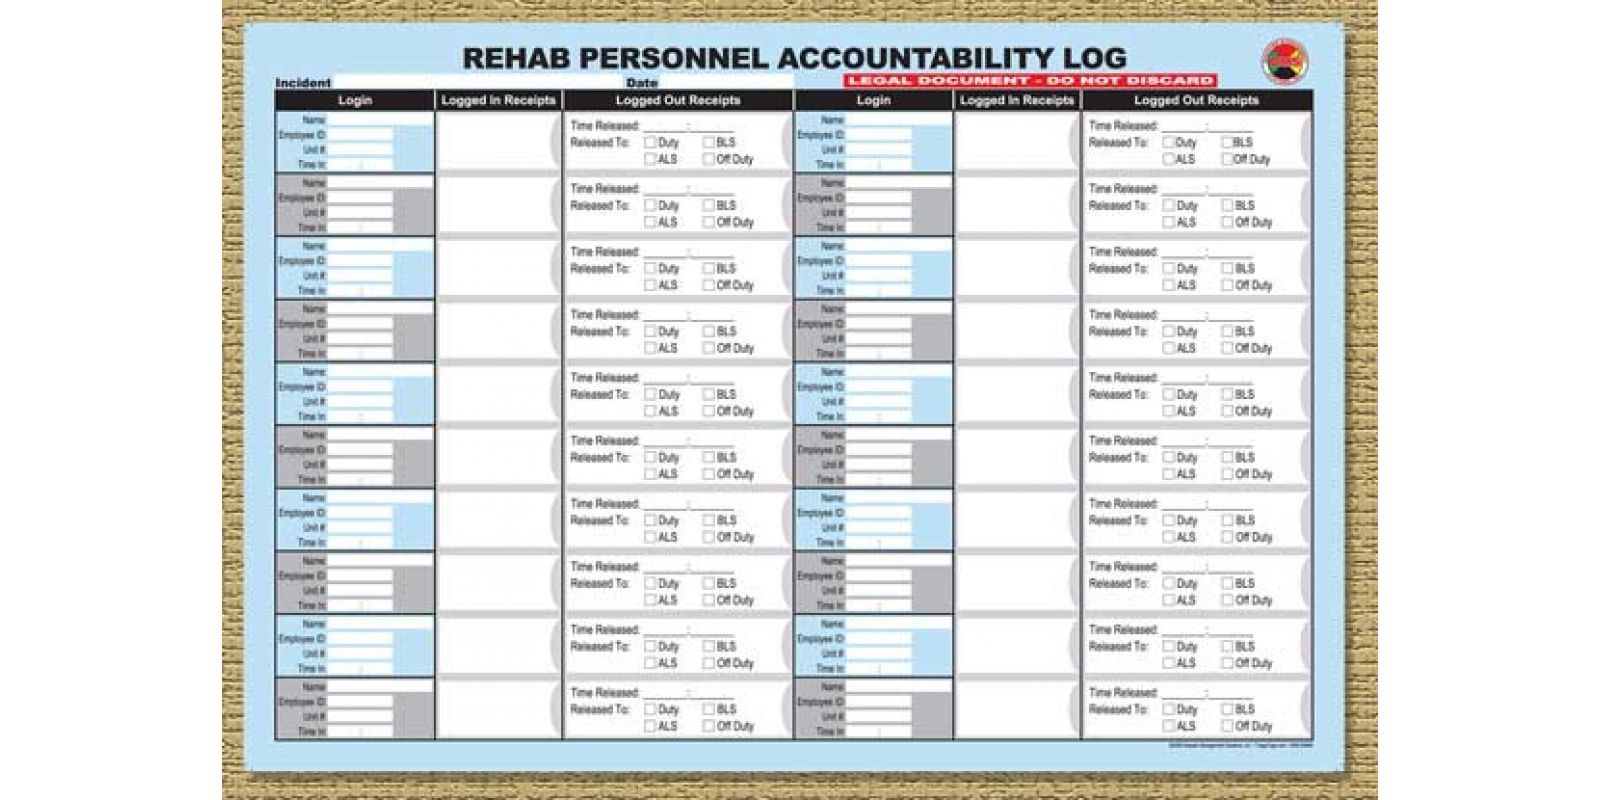 Dms Rehab Personnel Accountability Log 25 Sheets Per Pad Synthetic Waterproof Paper